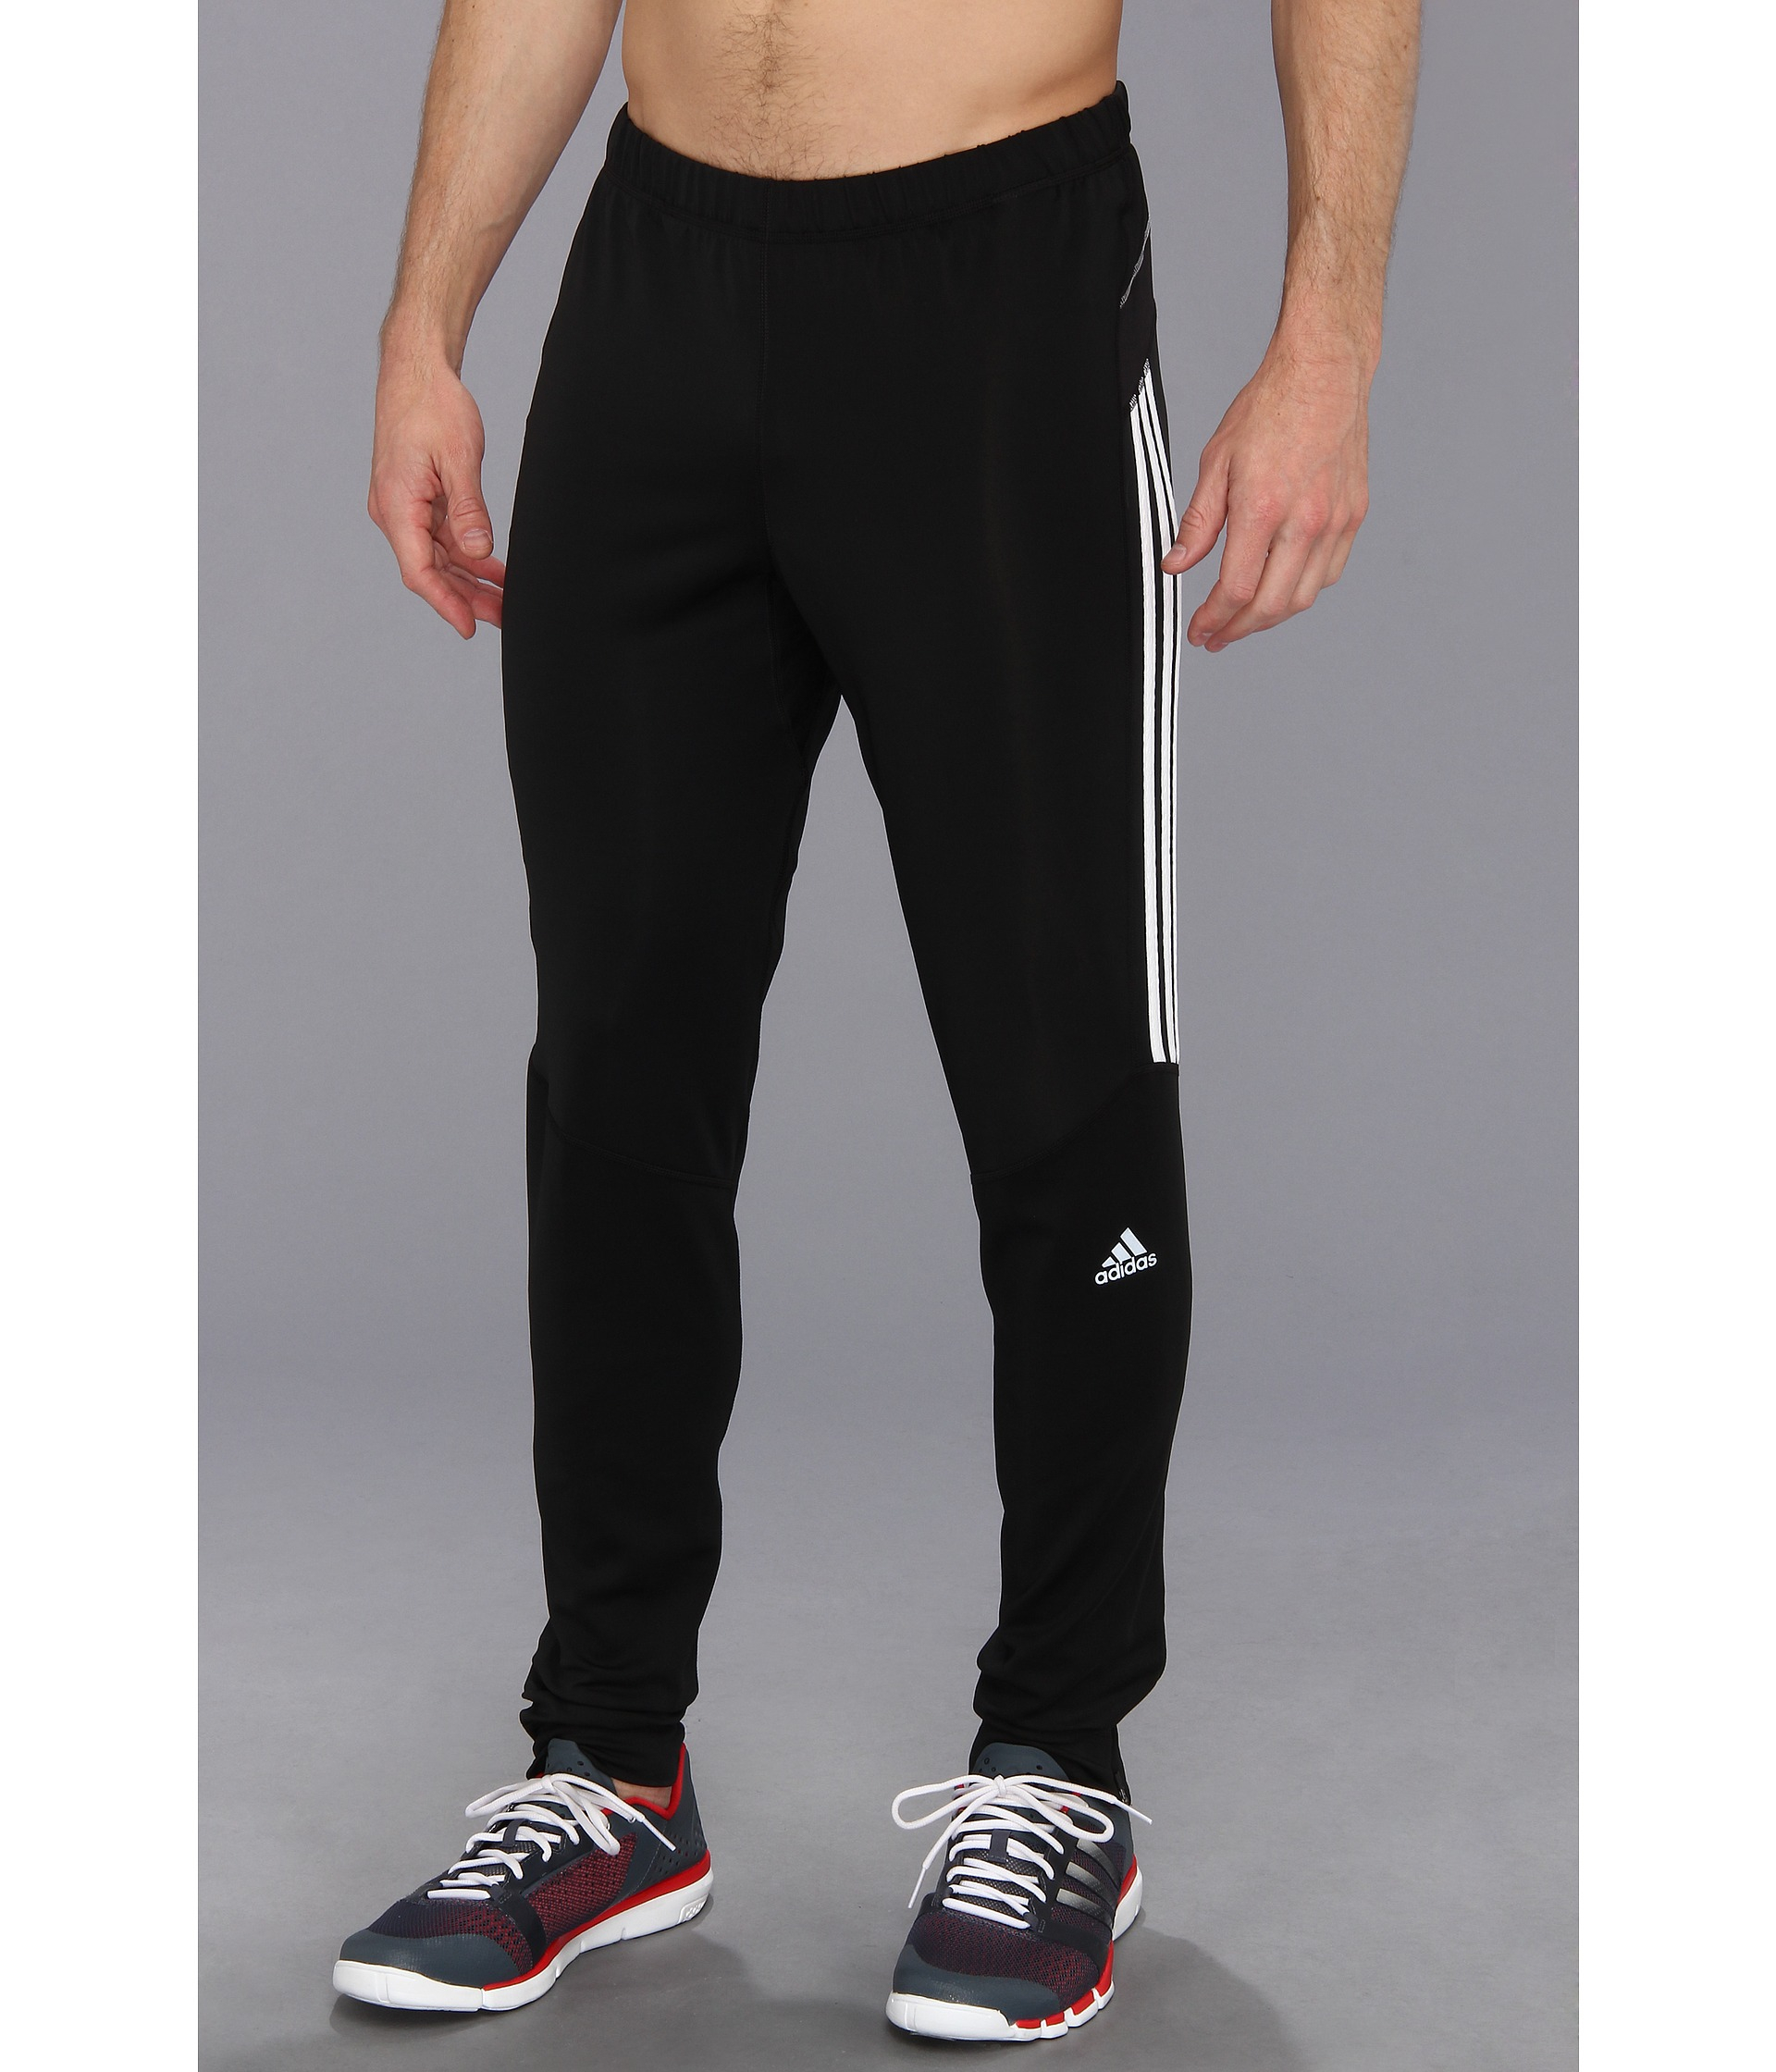 Lyst - adidas Response Astro Pant in Black for Men 7994c1d8a2df